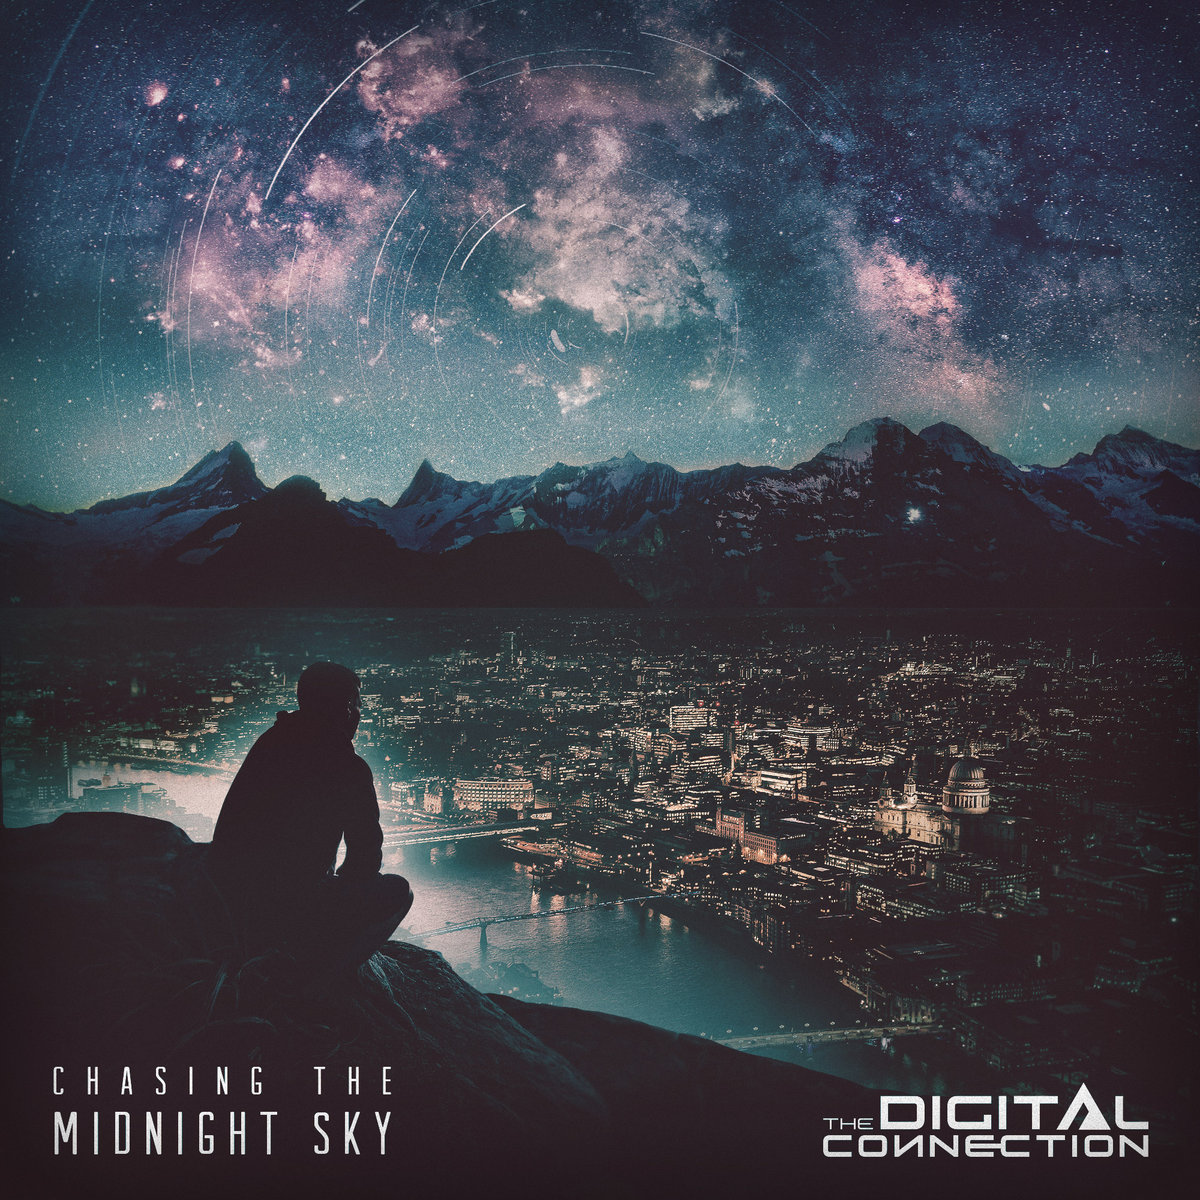 The Digital Connection - When I Miss You @ 'Chasing The Midnight Sky' album (colorado, idm)